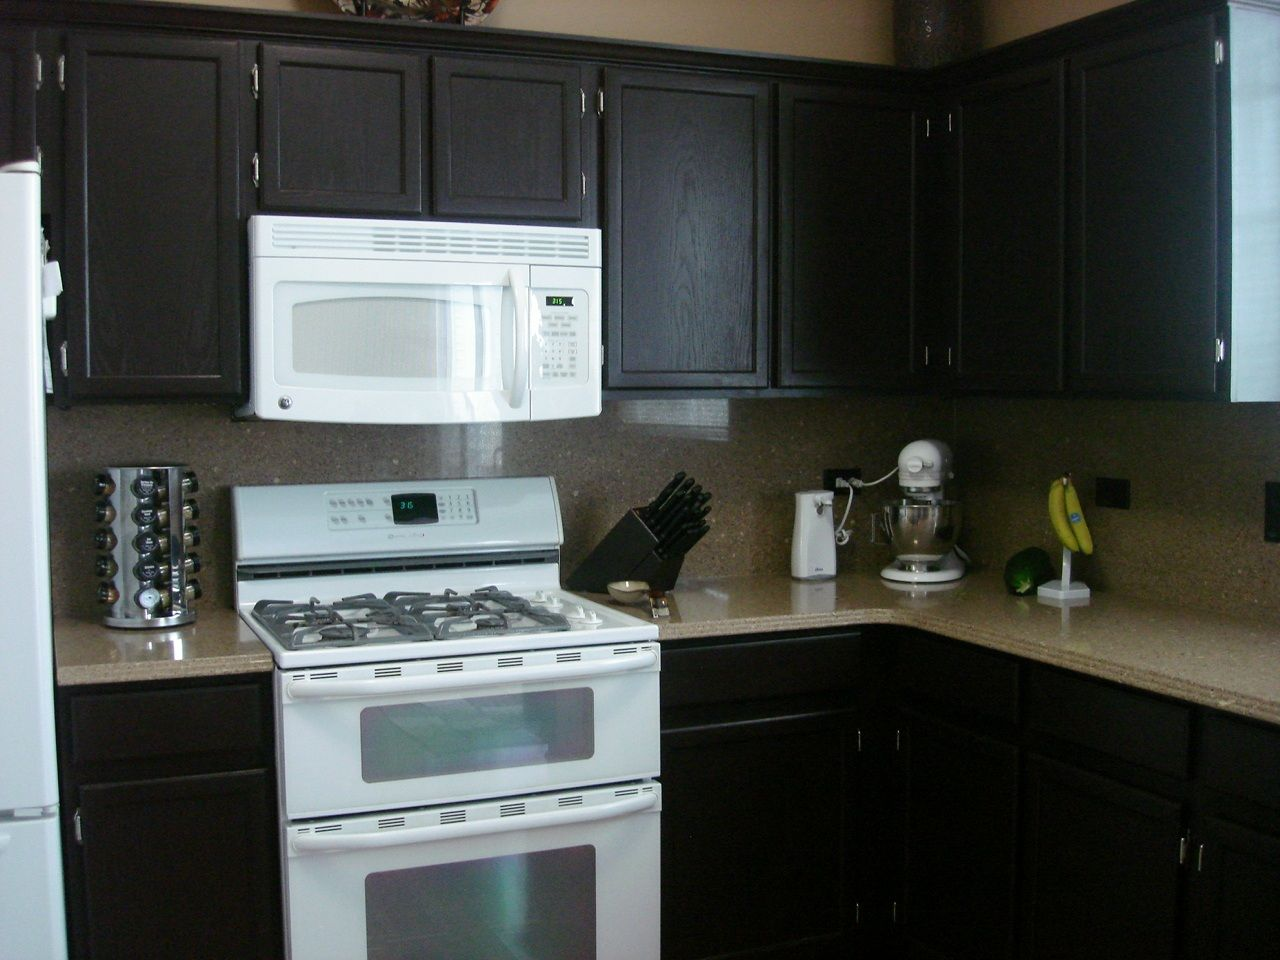 Rustoleum Cabinet Transformations Covering Our 70s Bright Yellow Countertops With The Onyx Soon